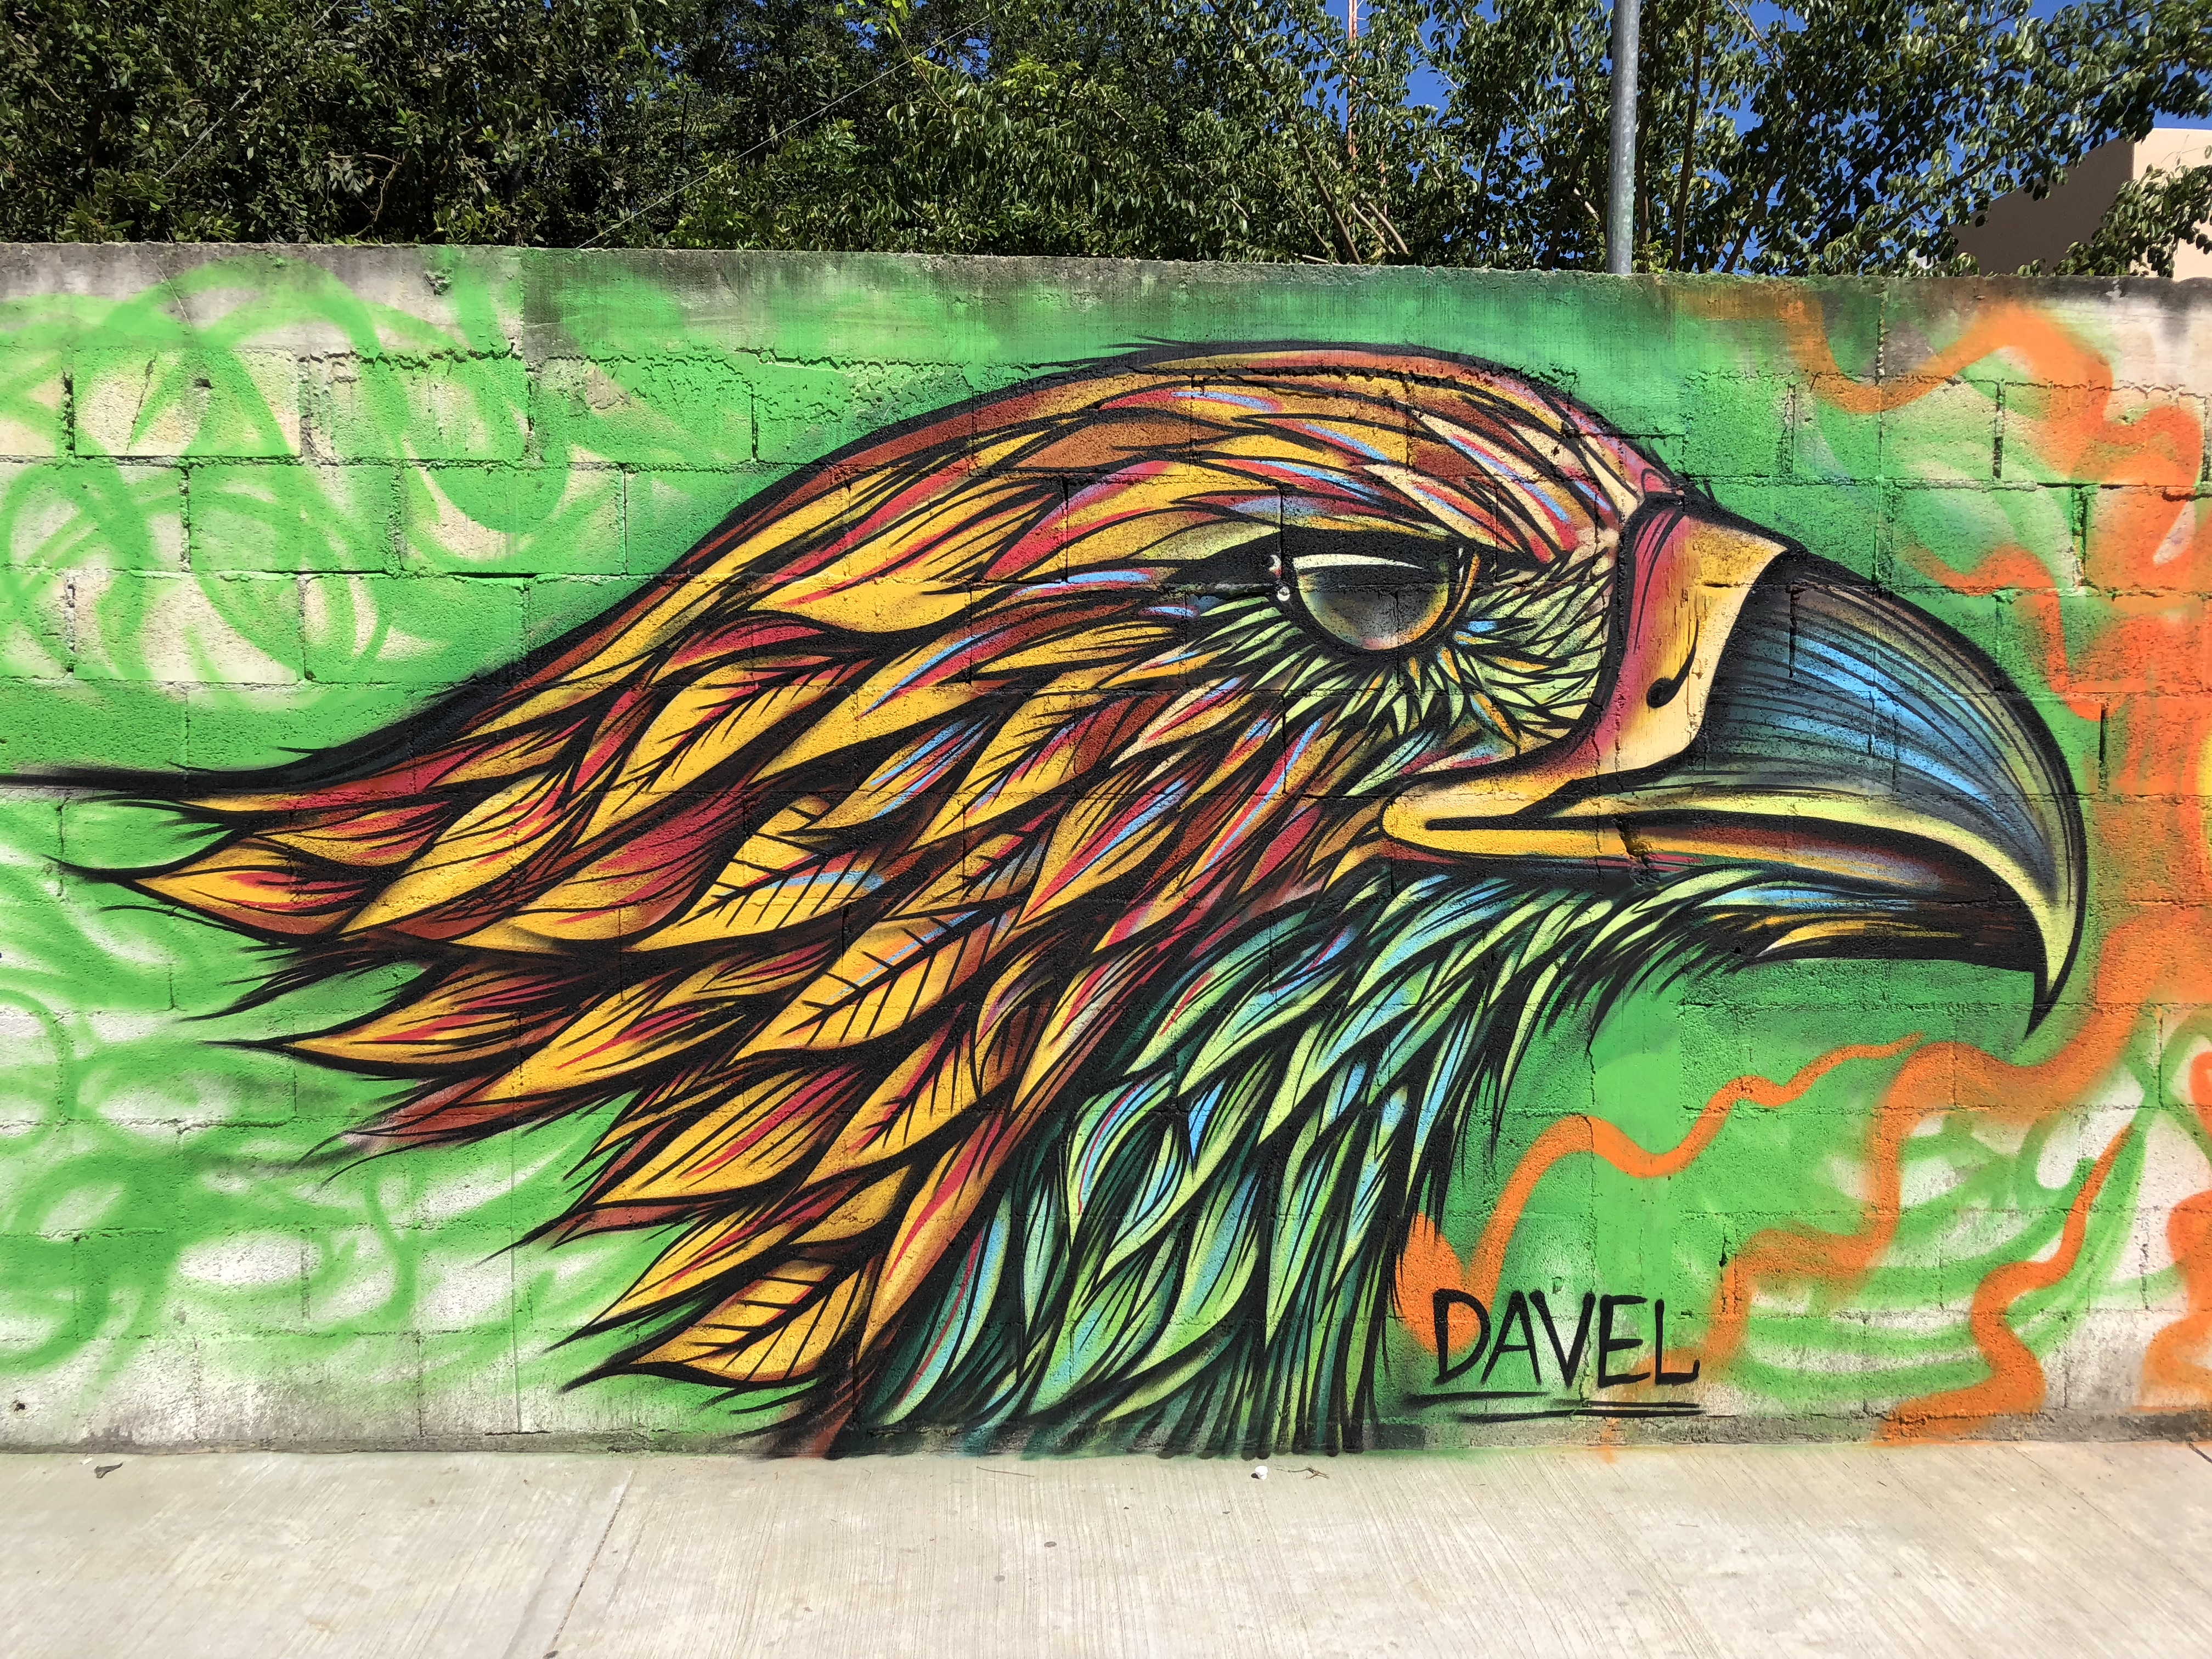 Golden Eagle Mural in Mexico